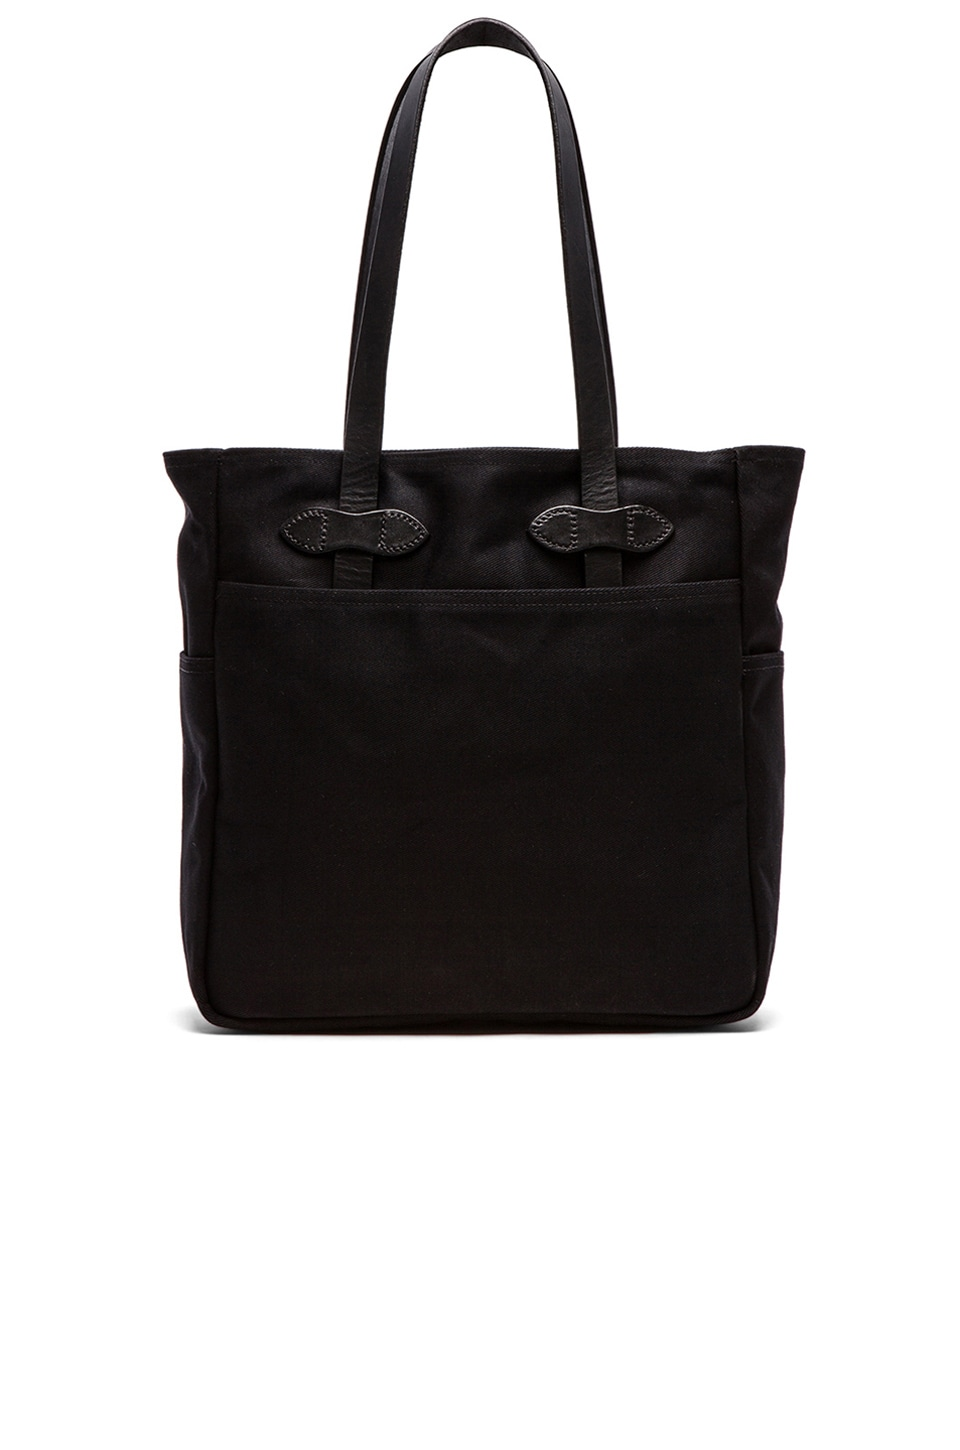 Filson Open Tote Bag in Black